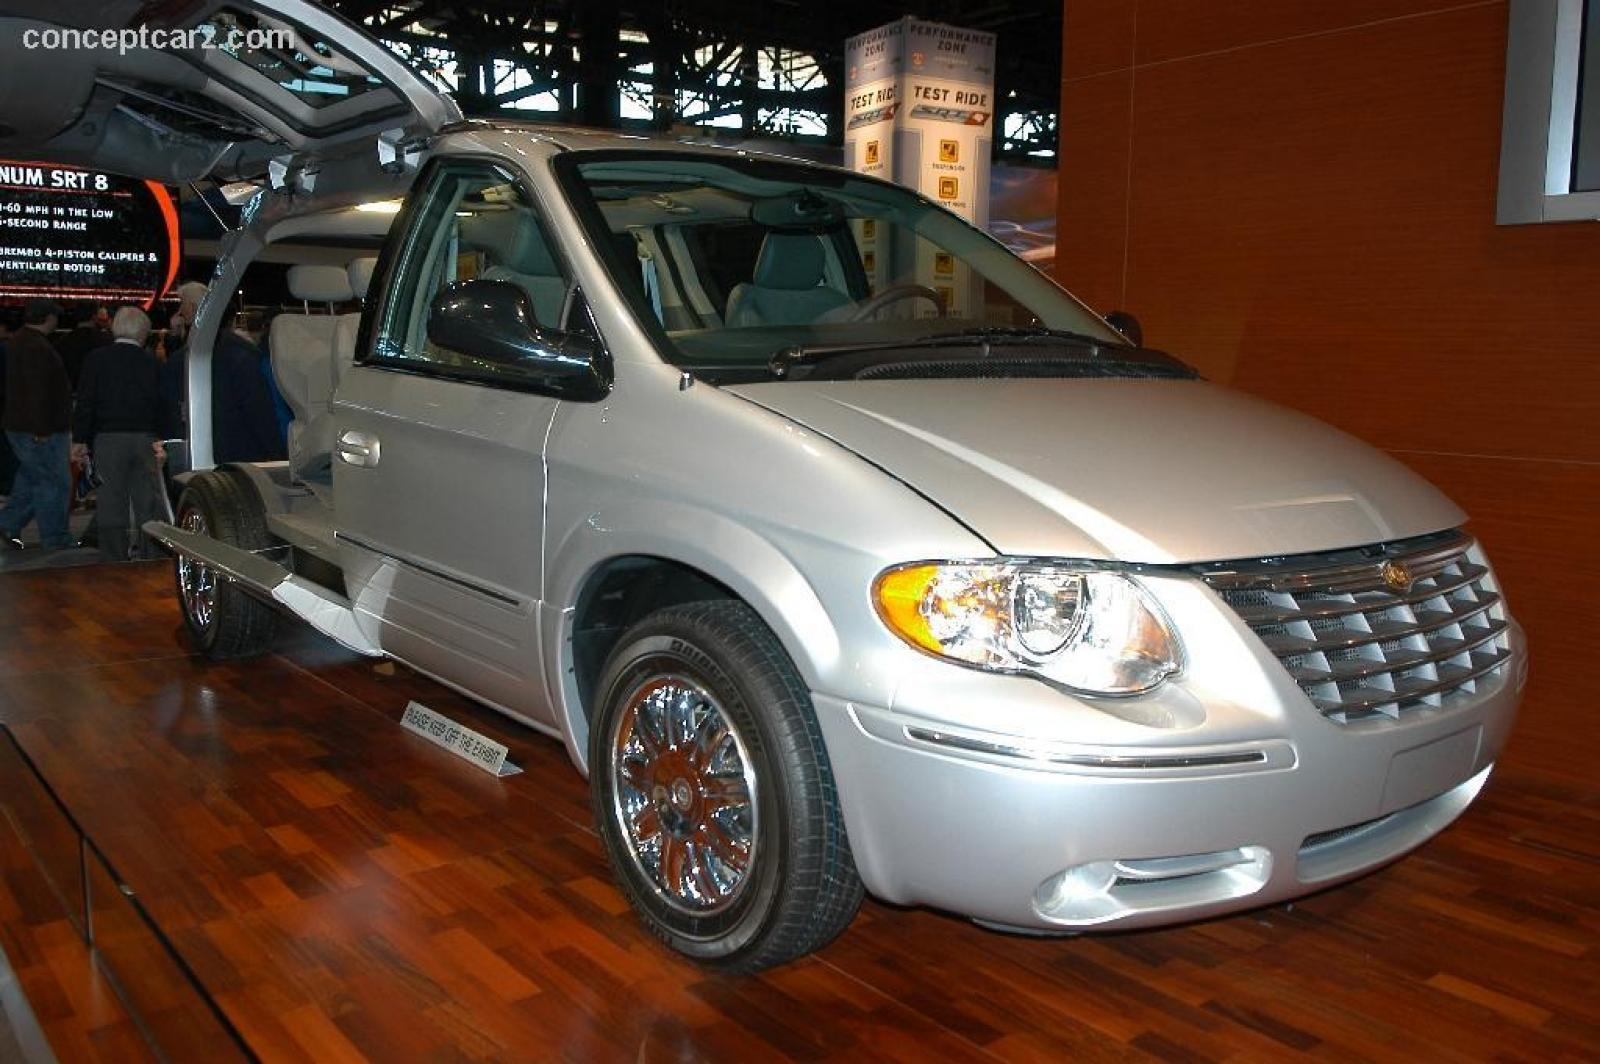 chrysler town and country 2 800 1024 1280 1600 origin 2006